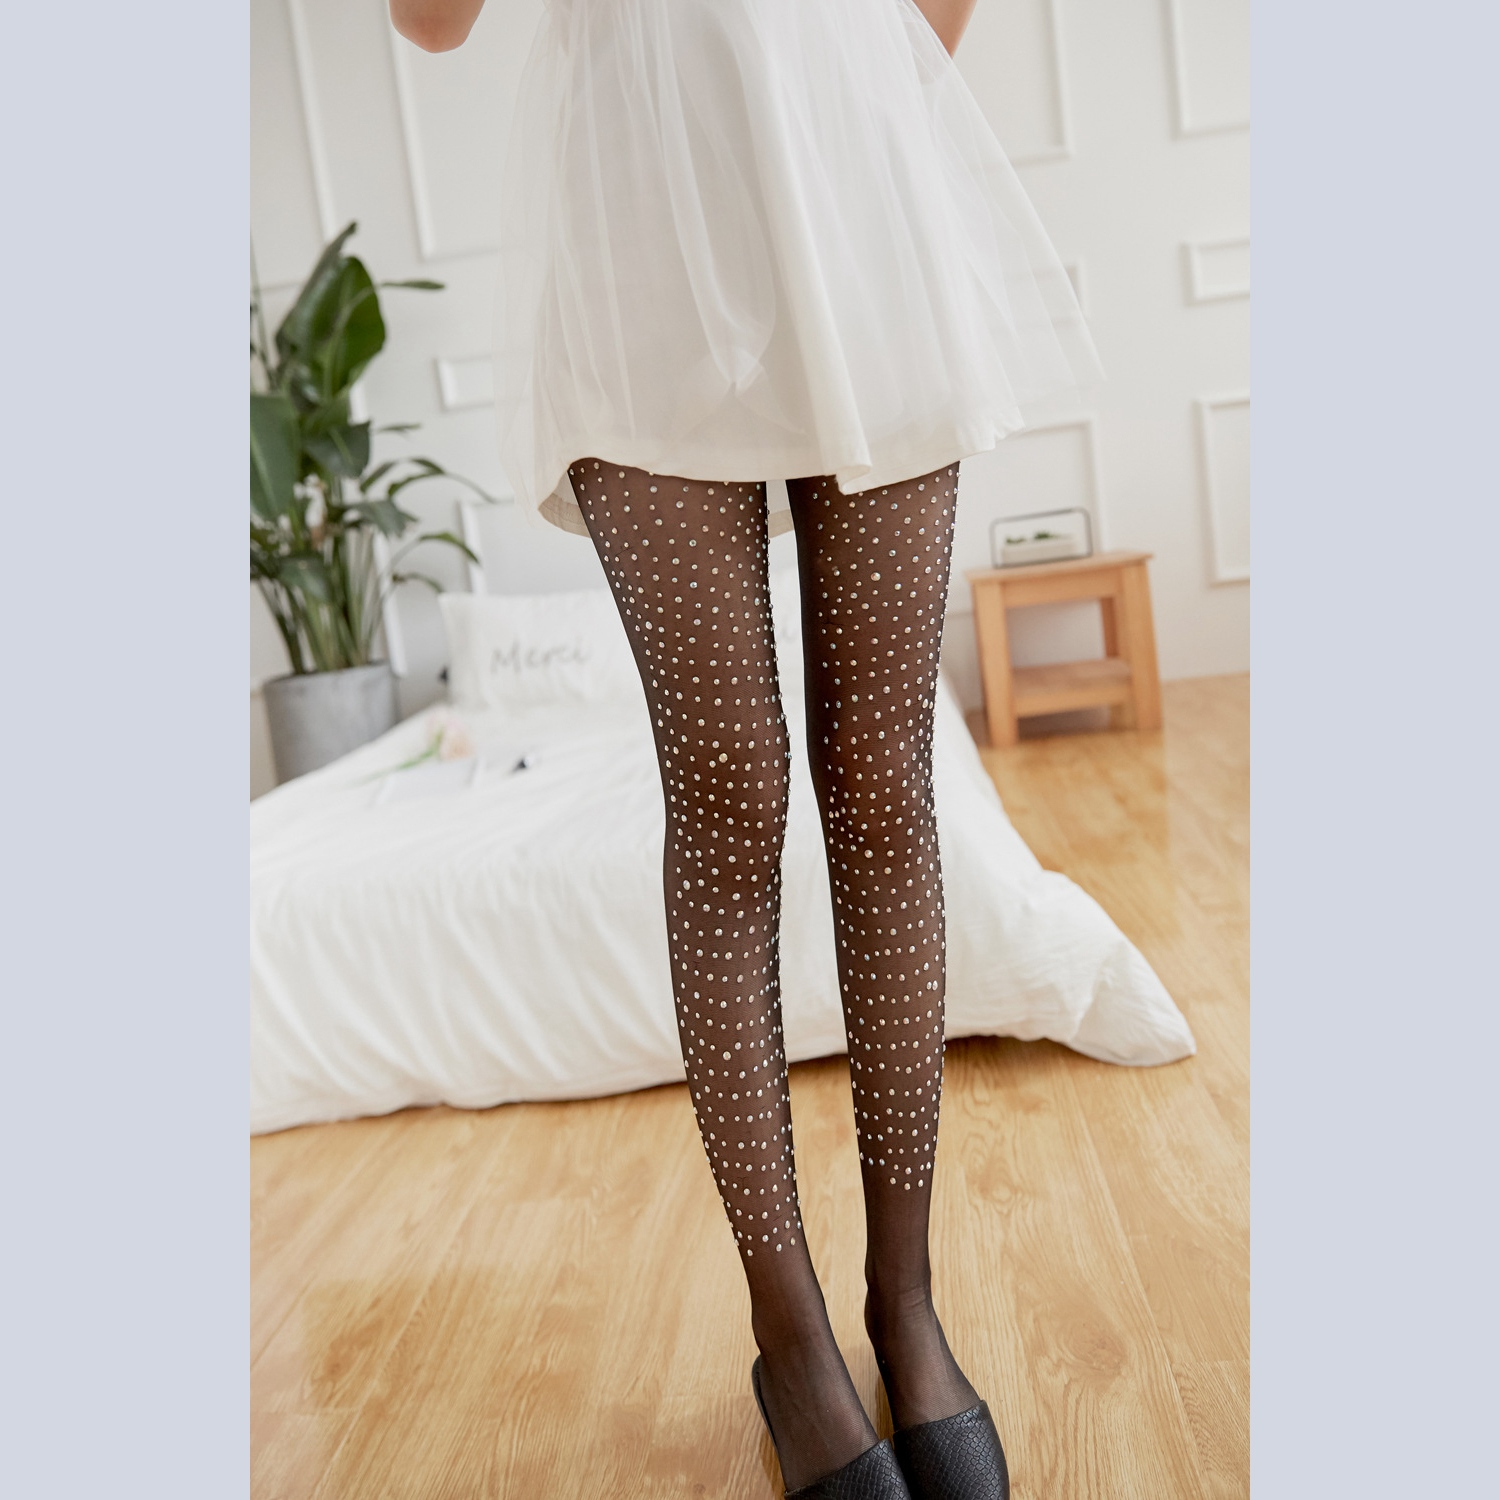 Buy Fashion Fashion Women Sexy Shiny Single Side Rhinestone Tights Stockings Pantyhose Stockings Hosiery Hosiery Women's Tights Wo